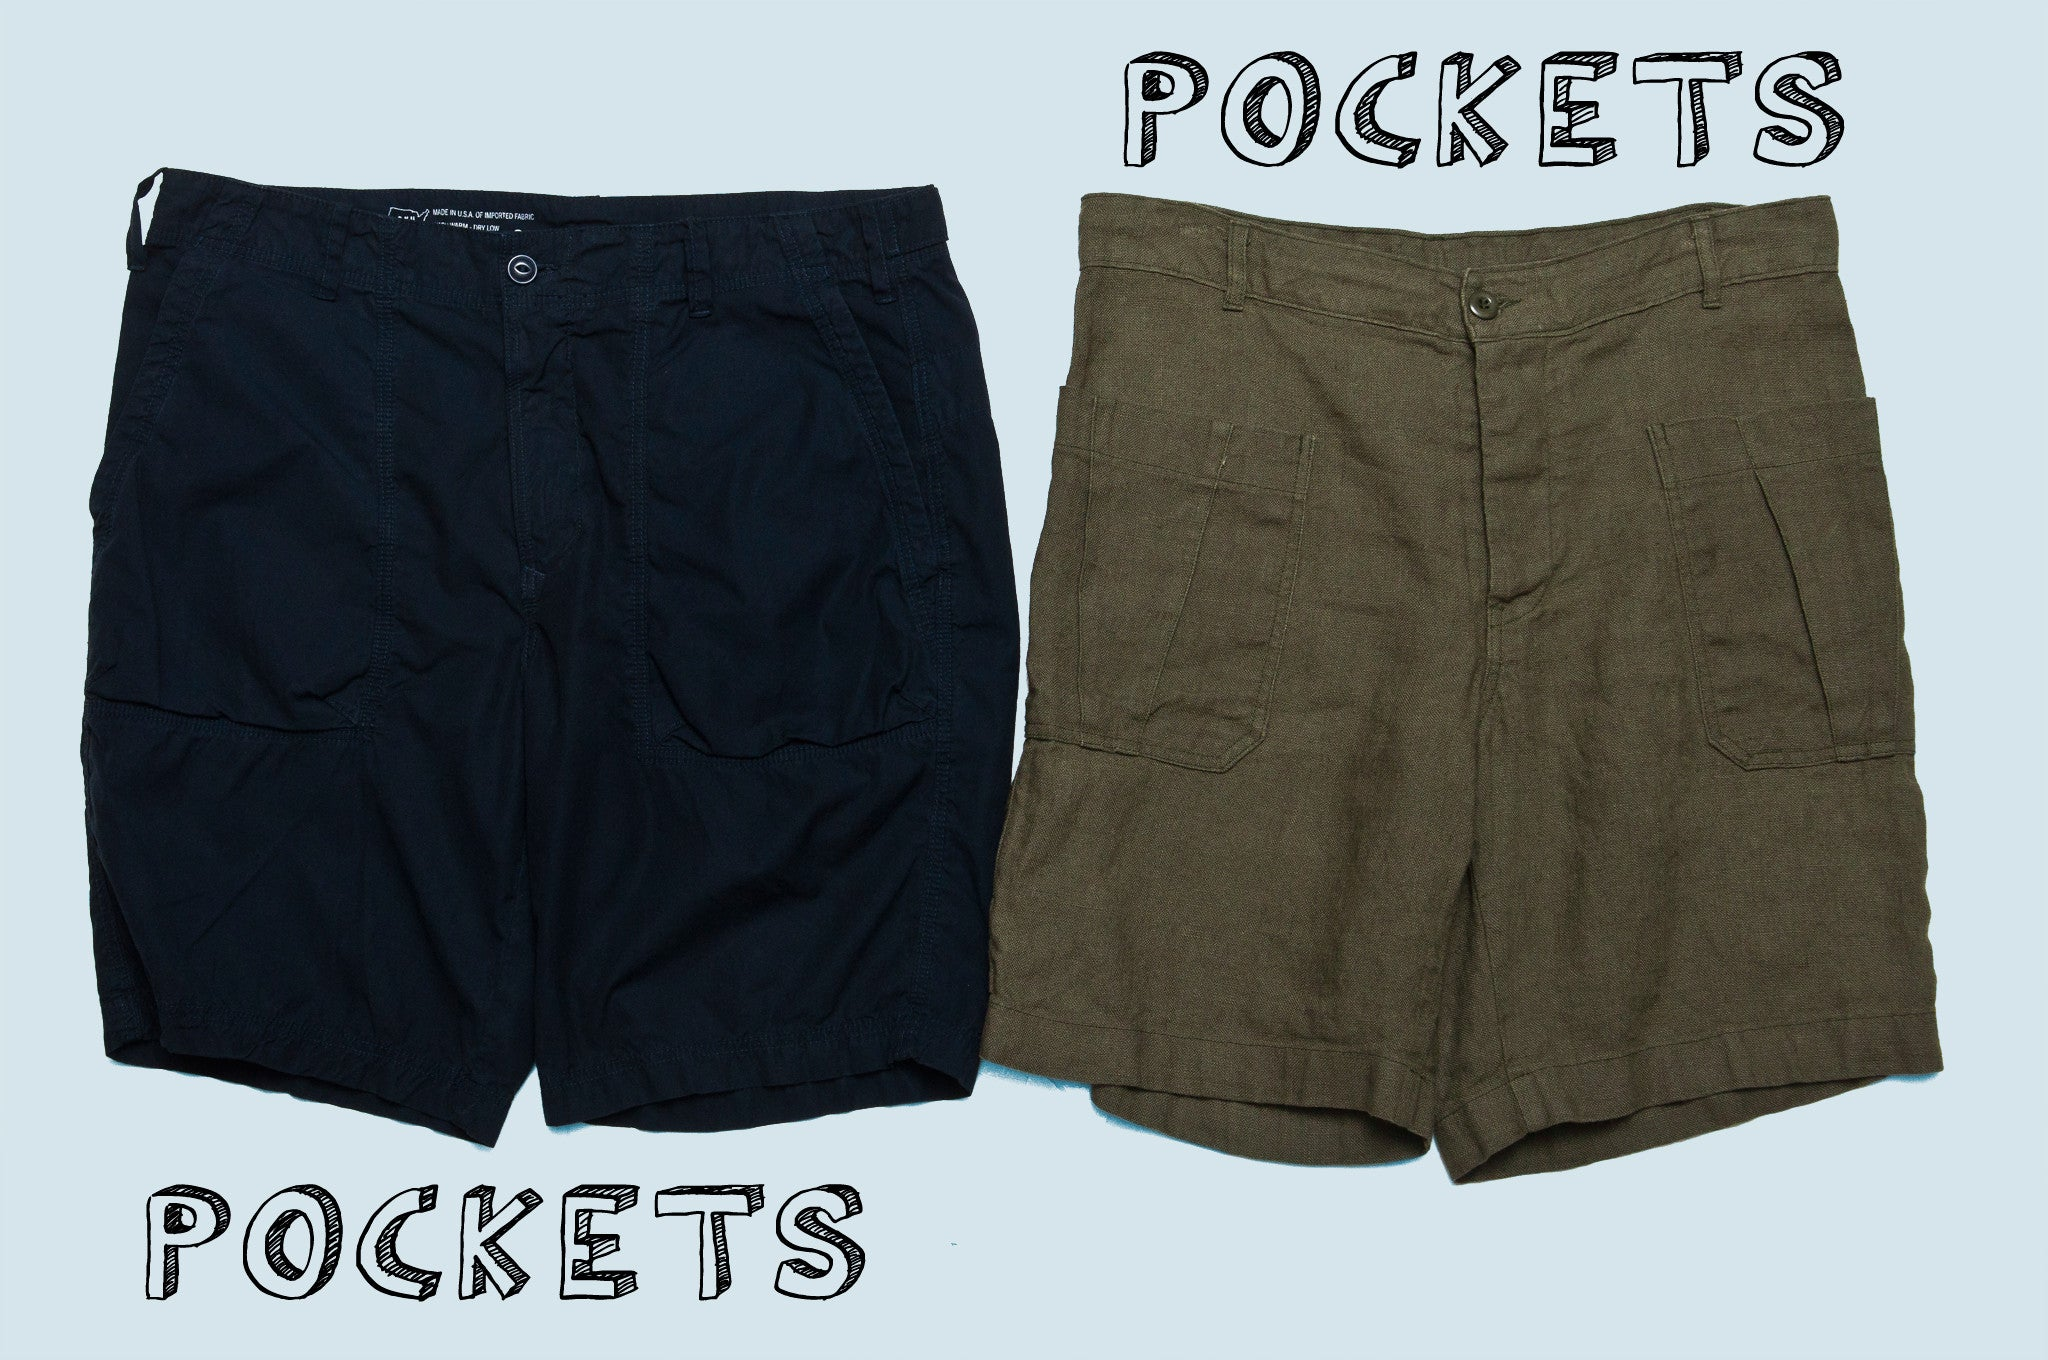 Save Khaki United Fatigue Shorts and Arpenteur Olona Plain Weave Shorts